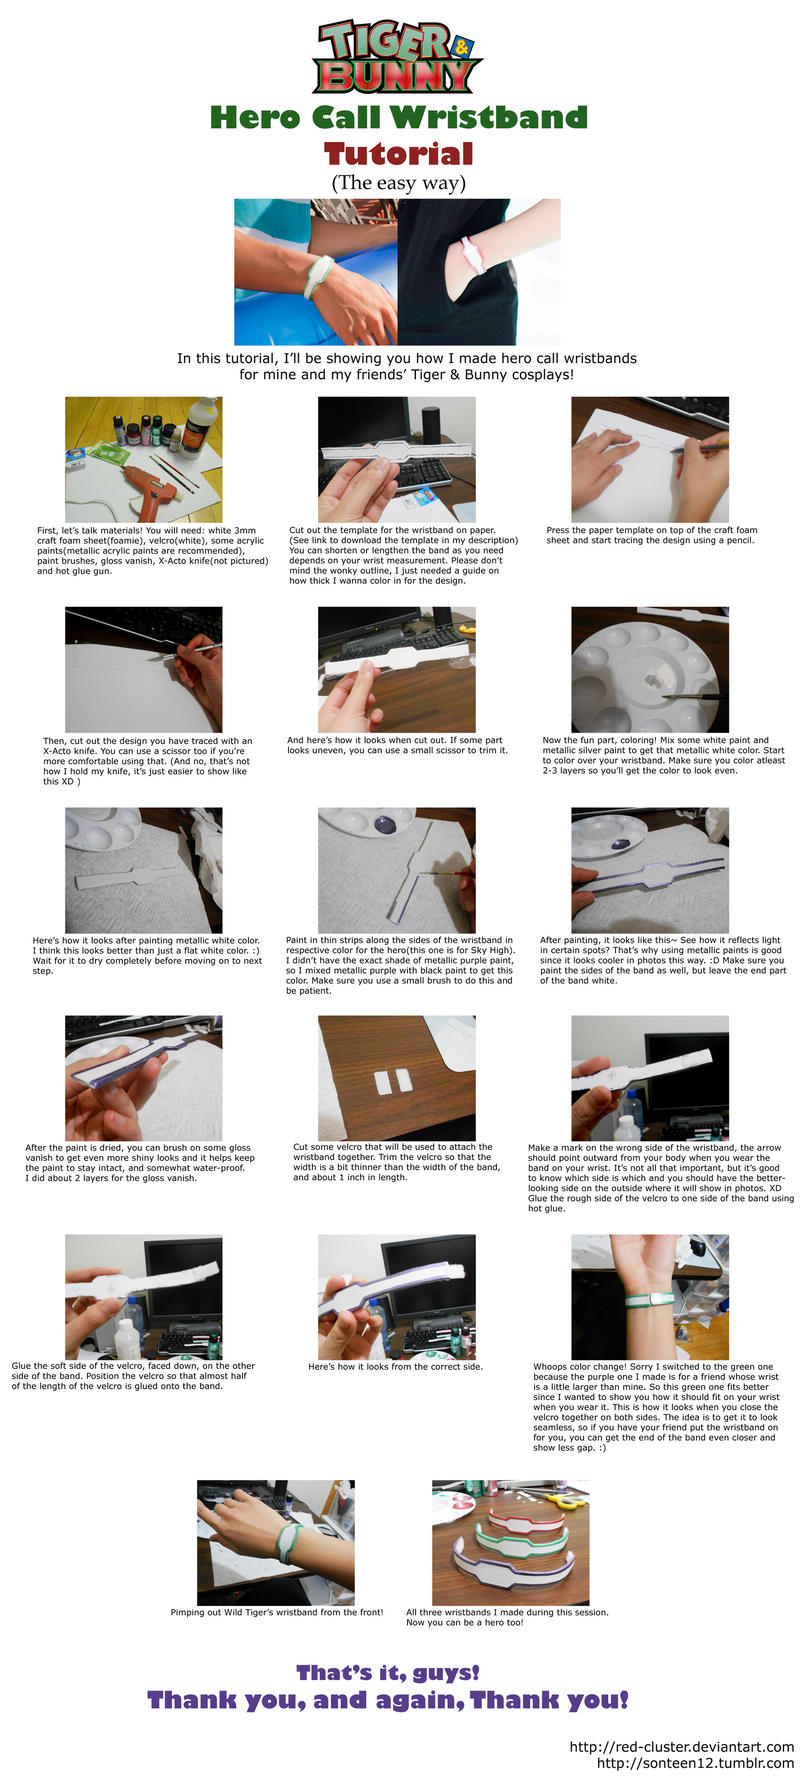 Tiger and Bunny Call Wristband Tutorial by Pisaracosplay